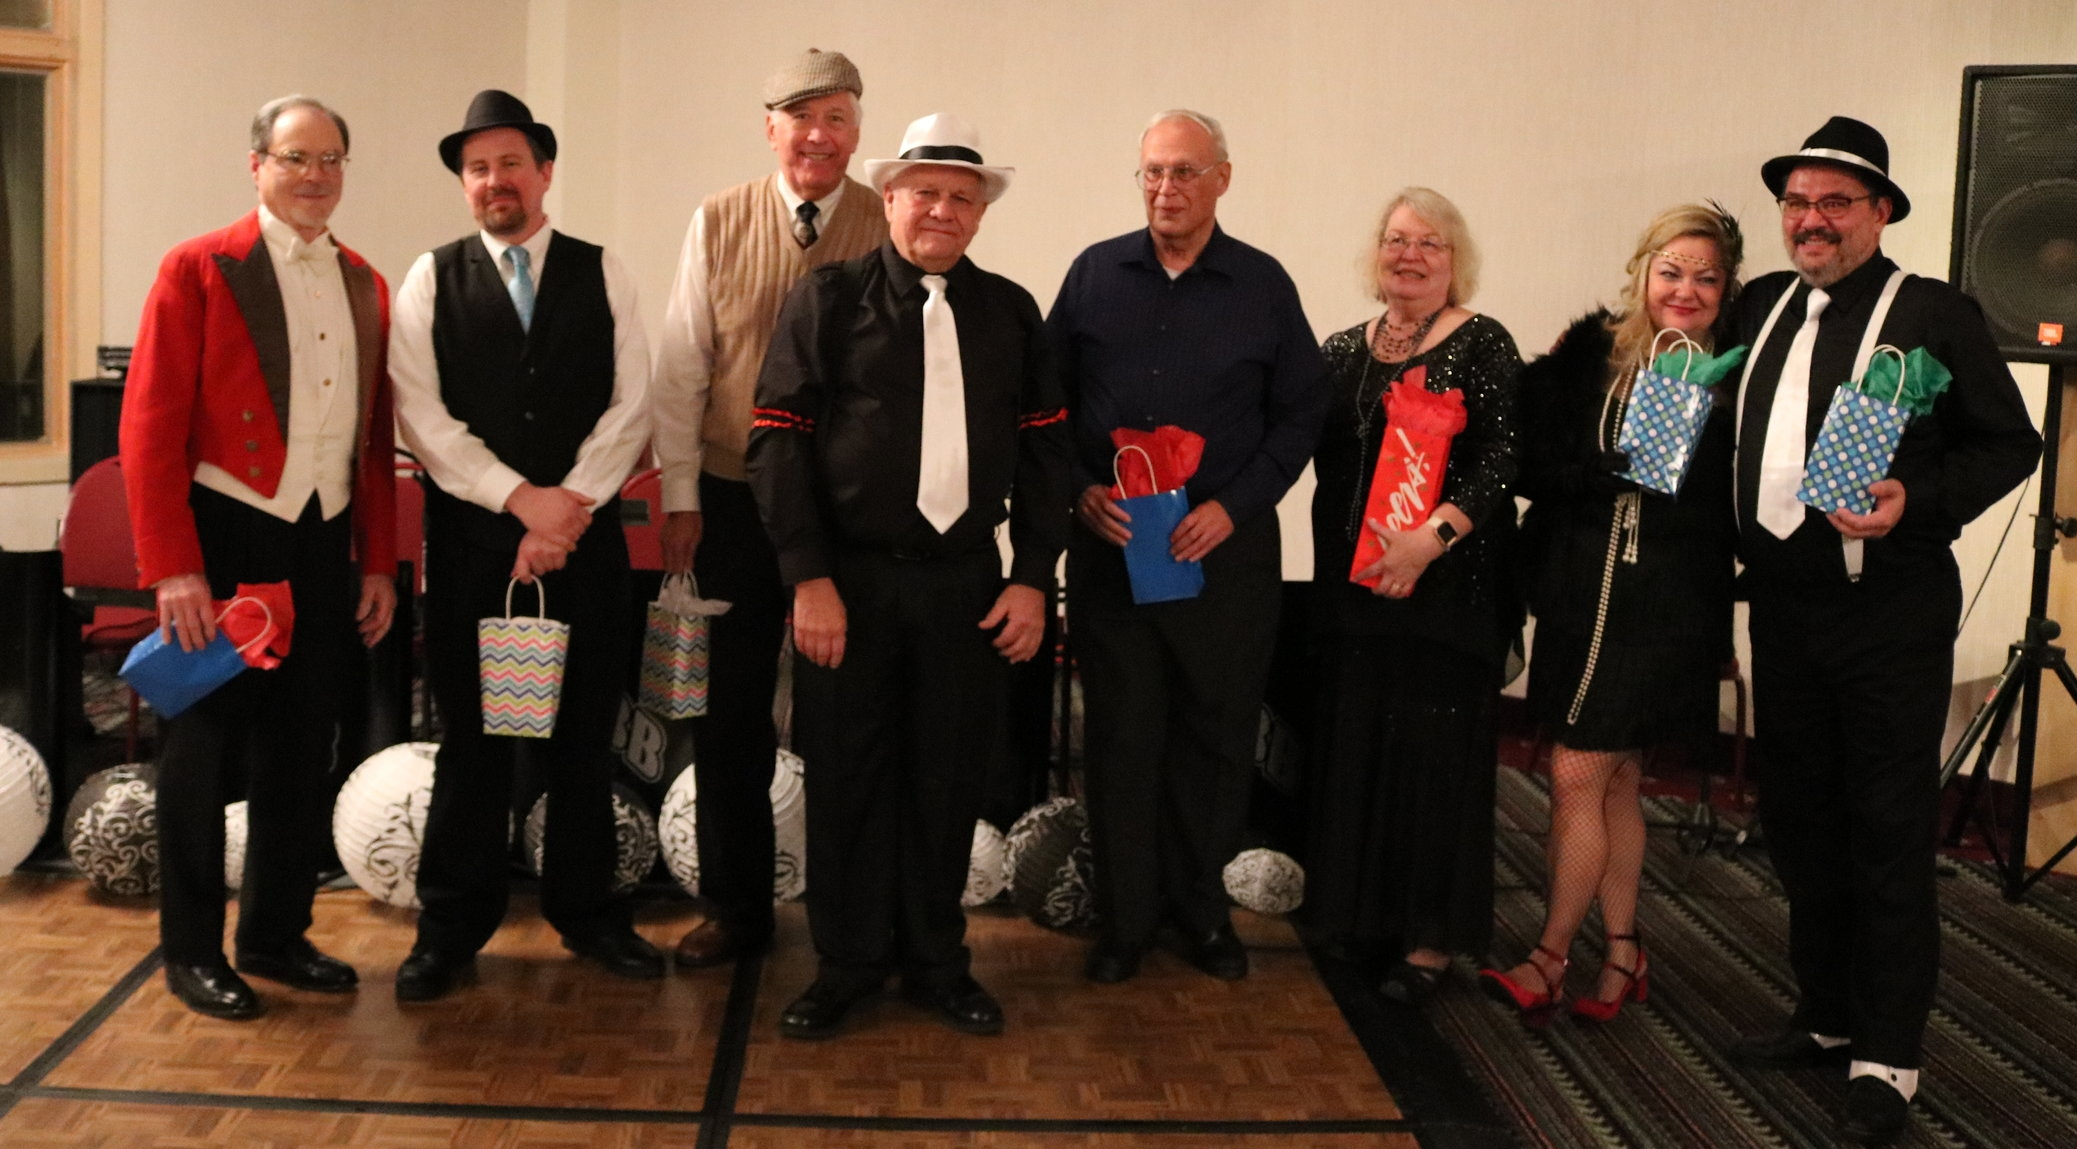 Commodore George Harizal thanked 2017 Bridge, Trustees, and Staff Officers. Left to Right: Rear Commodore -Harvey Rickert, Vice Commodore - Don Petsch, Trustee - Tim Kemerley, George Harizal, Trustee - Jim Hearst, Secretary - Janice Hearst, Trustee - Sandy Biesenberger, Trustee - Russ Marcks (Not Pictured: Past Commodore Jan Holmes and Treasurer Margo Holmes)